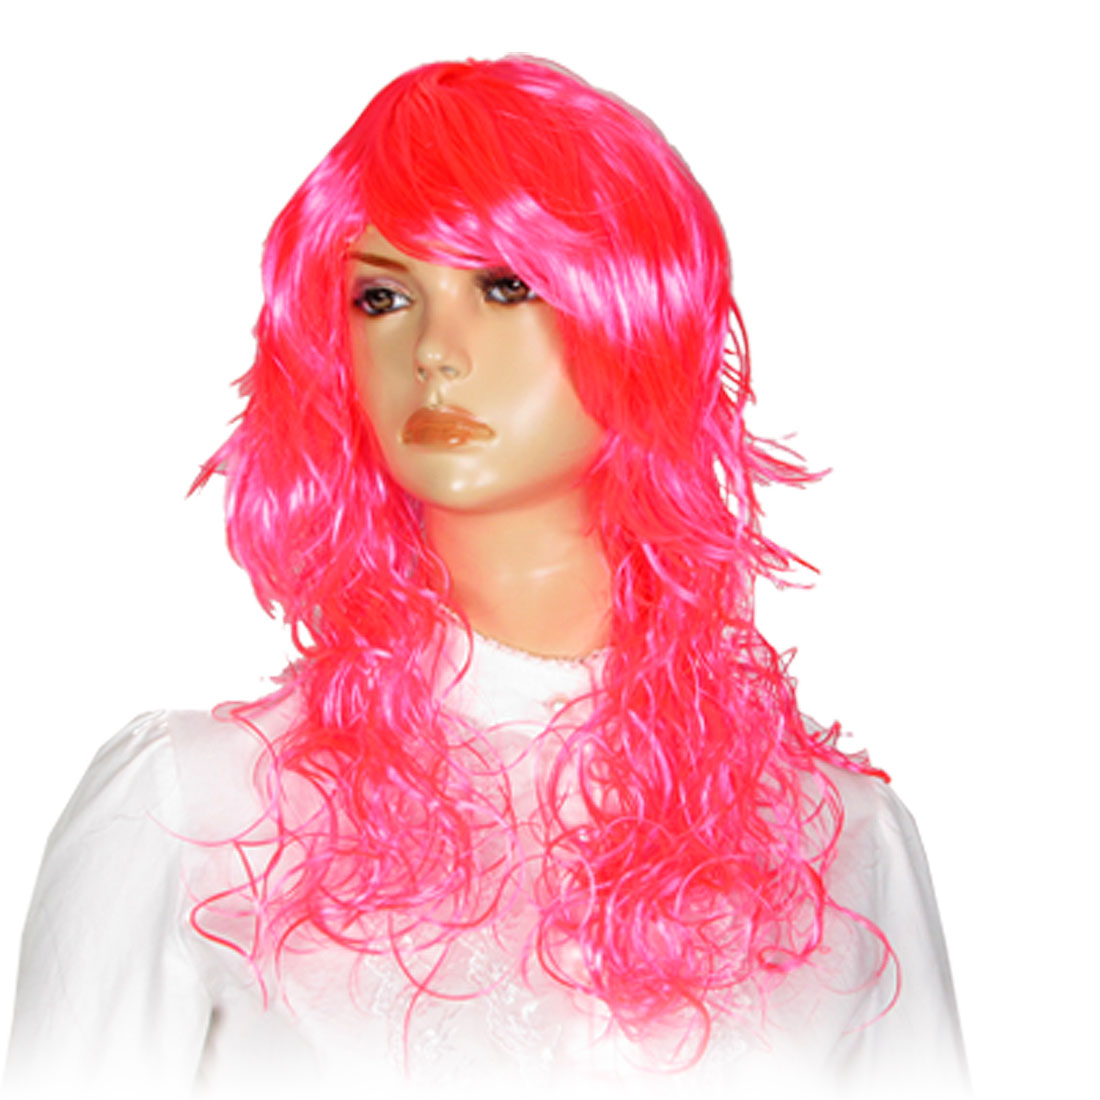 Cosplay Pink Curly Wavy Hair Wig Hairpiece w Bangs